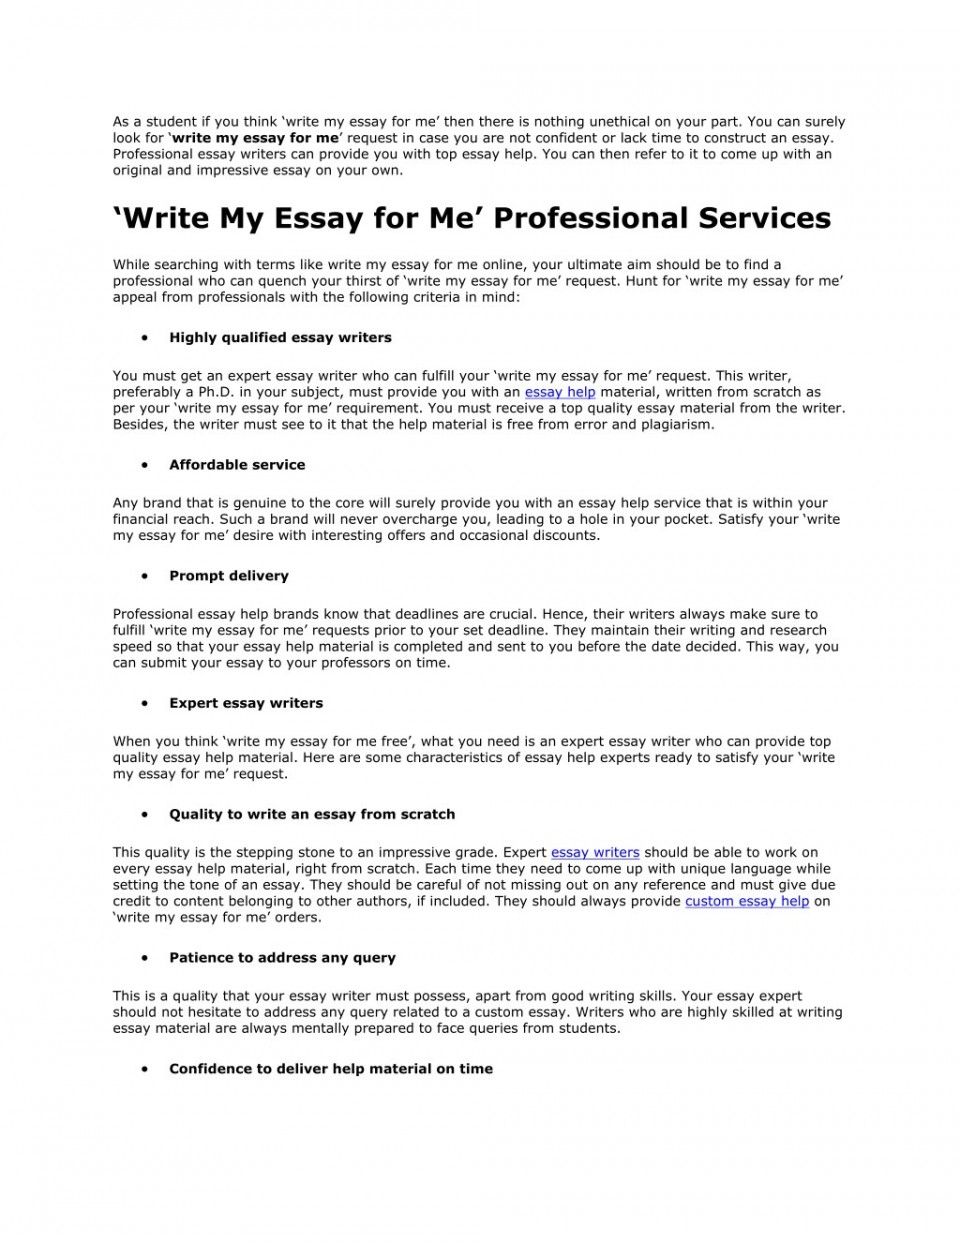 017 Write My Essay For Me Example As Student If You Think Surprising Free Online Generator 960